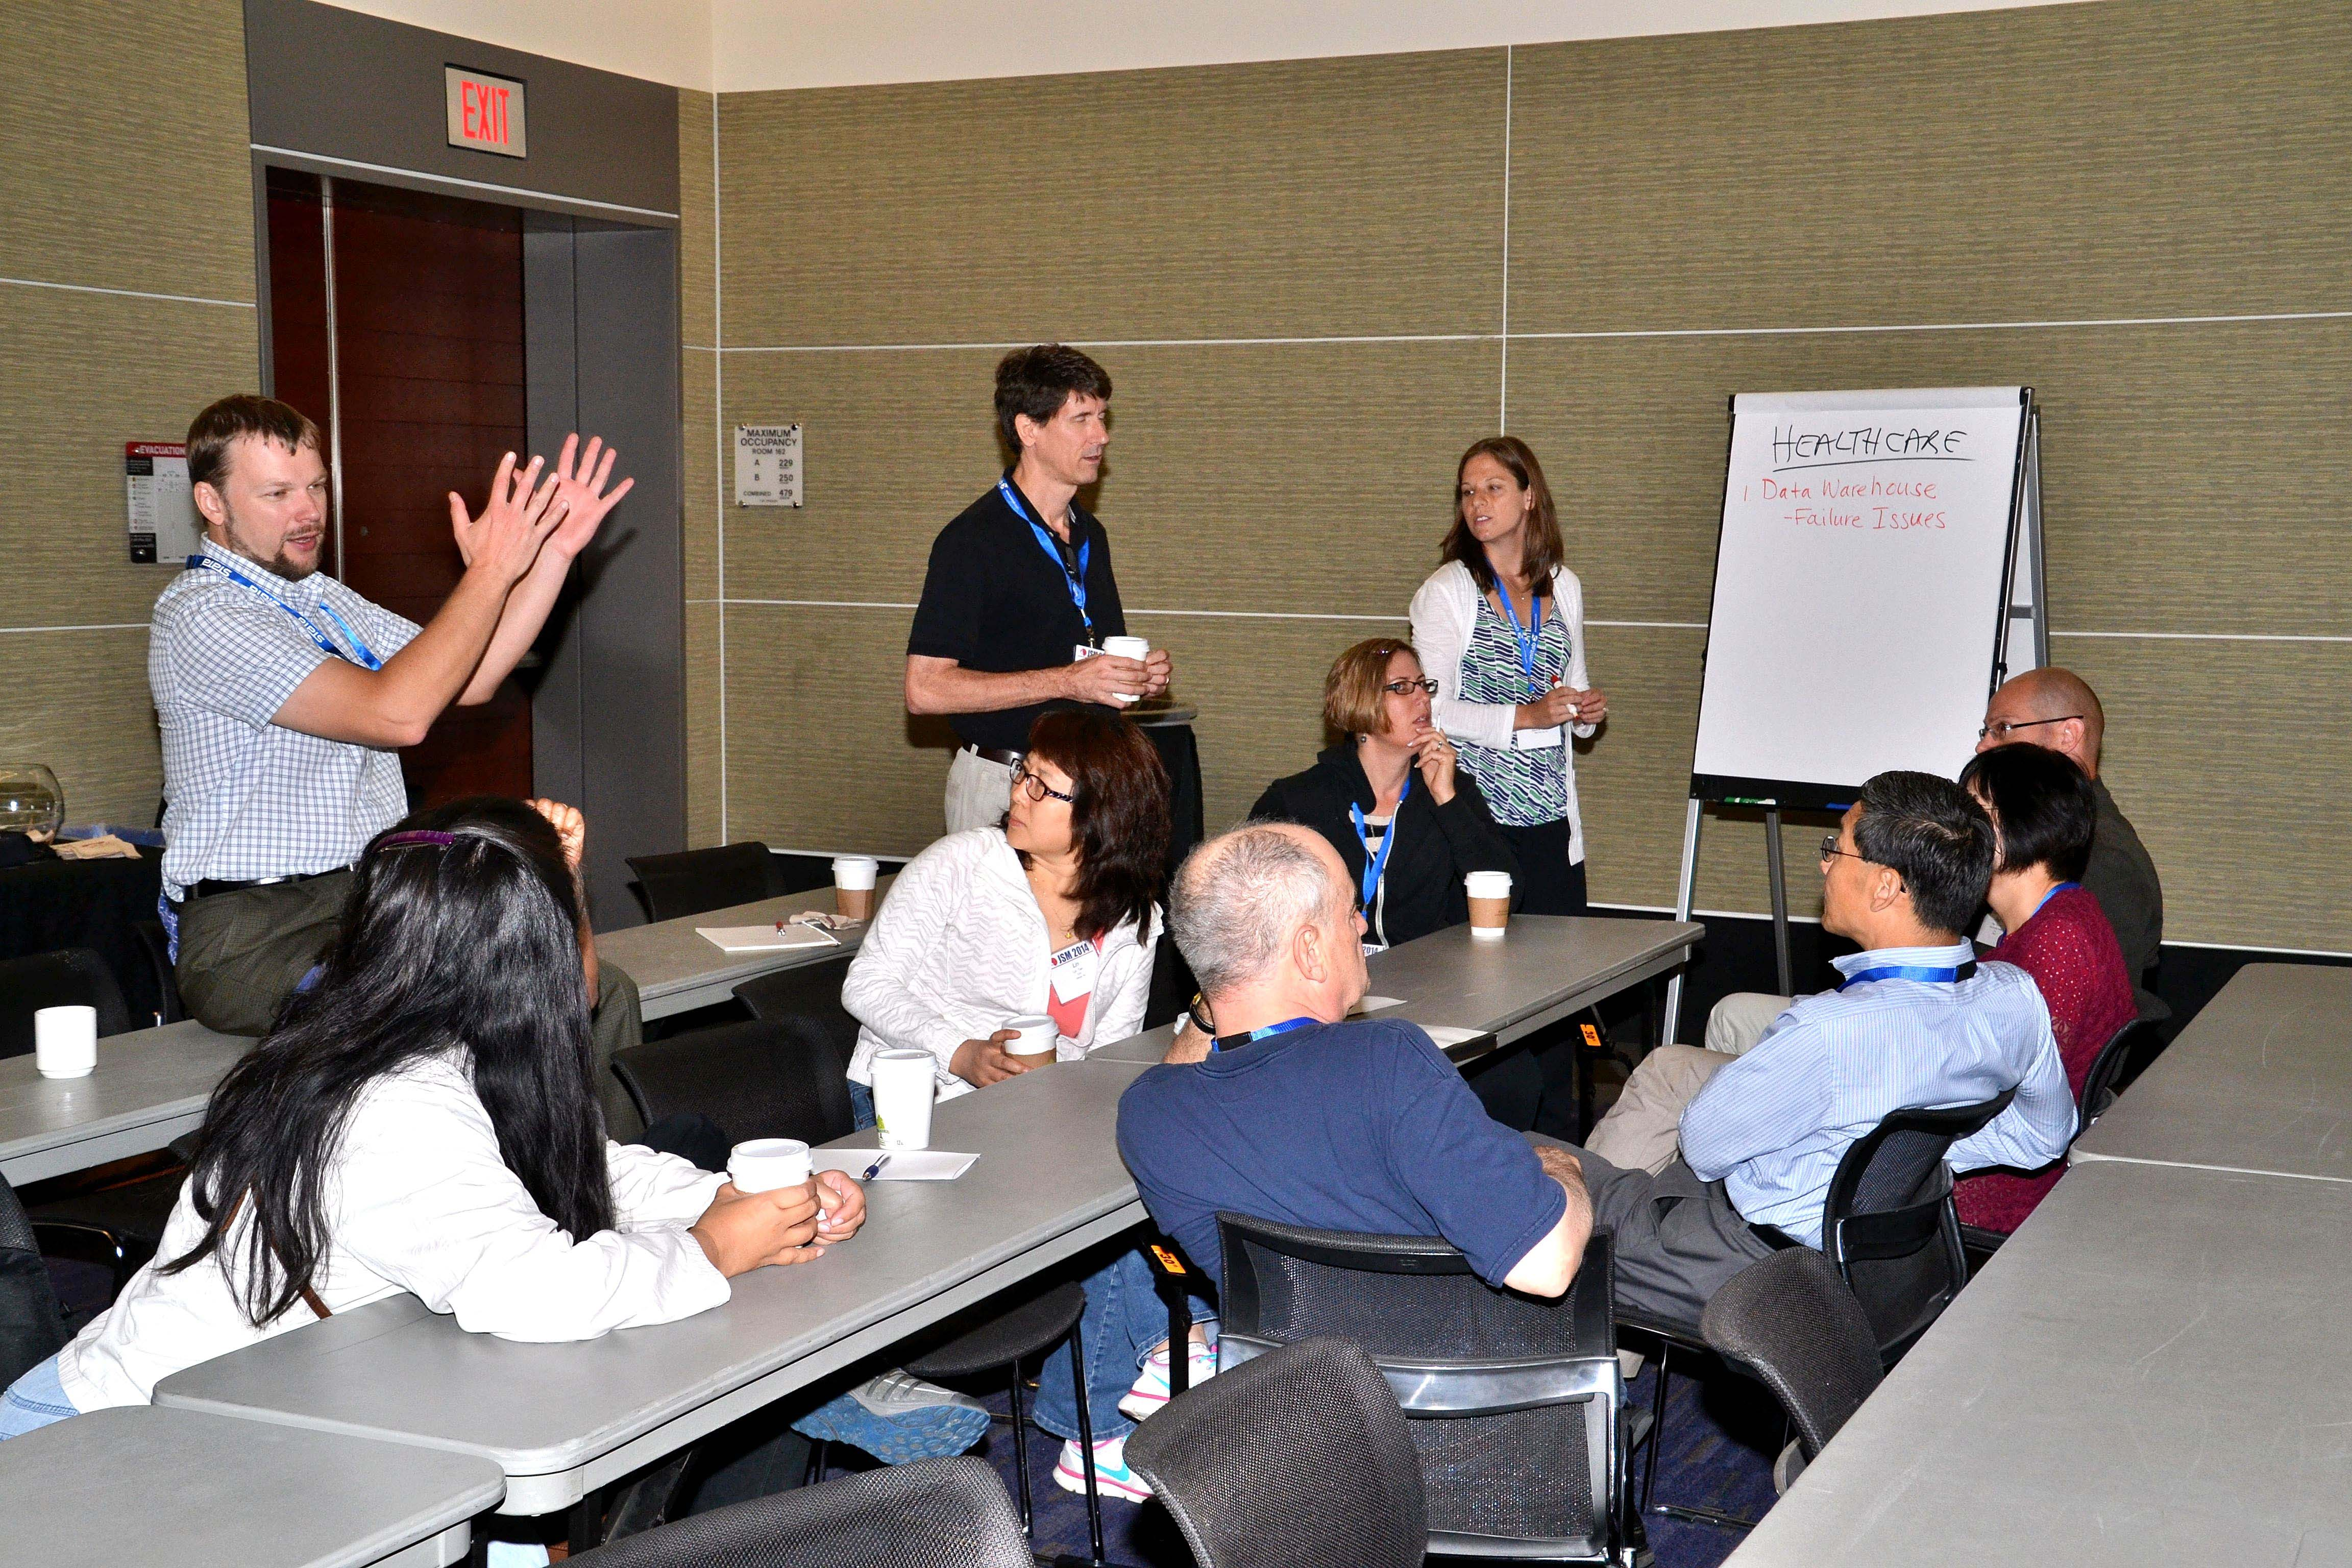 Breakout groups explore during Enhancing Big Data Projects Through Statistical Engineering, taught by Ronald Snee,  Richard D. De Veaux, and Roger Hoerl